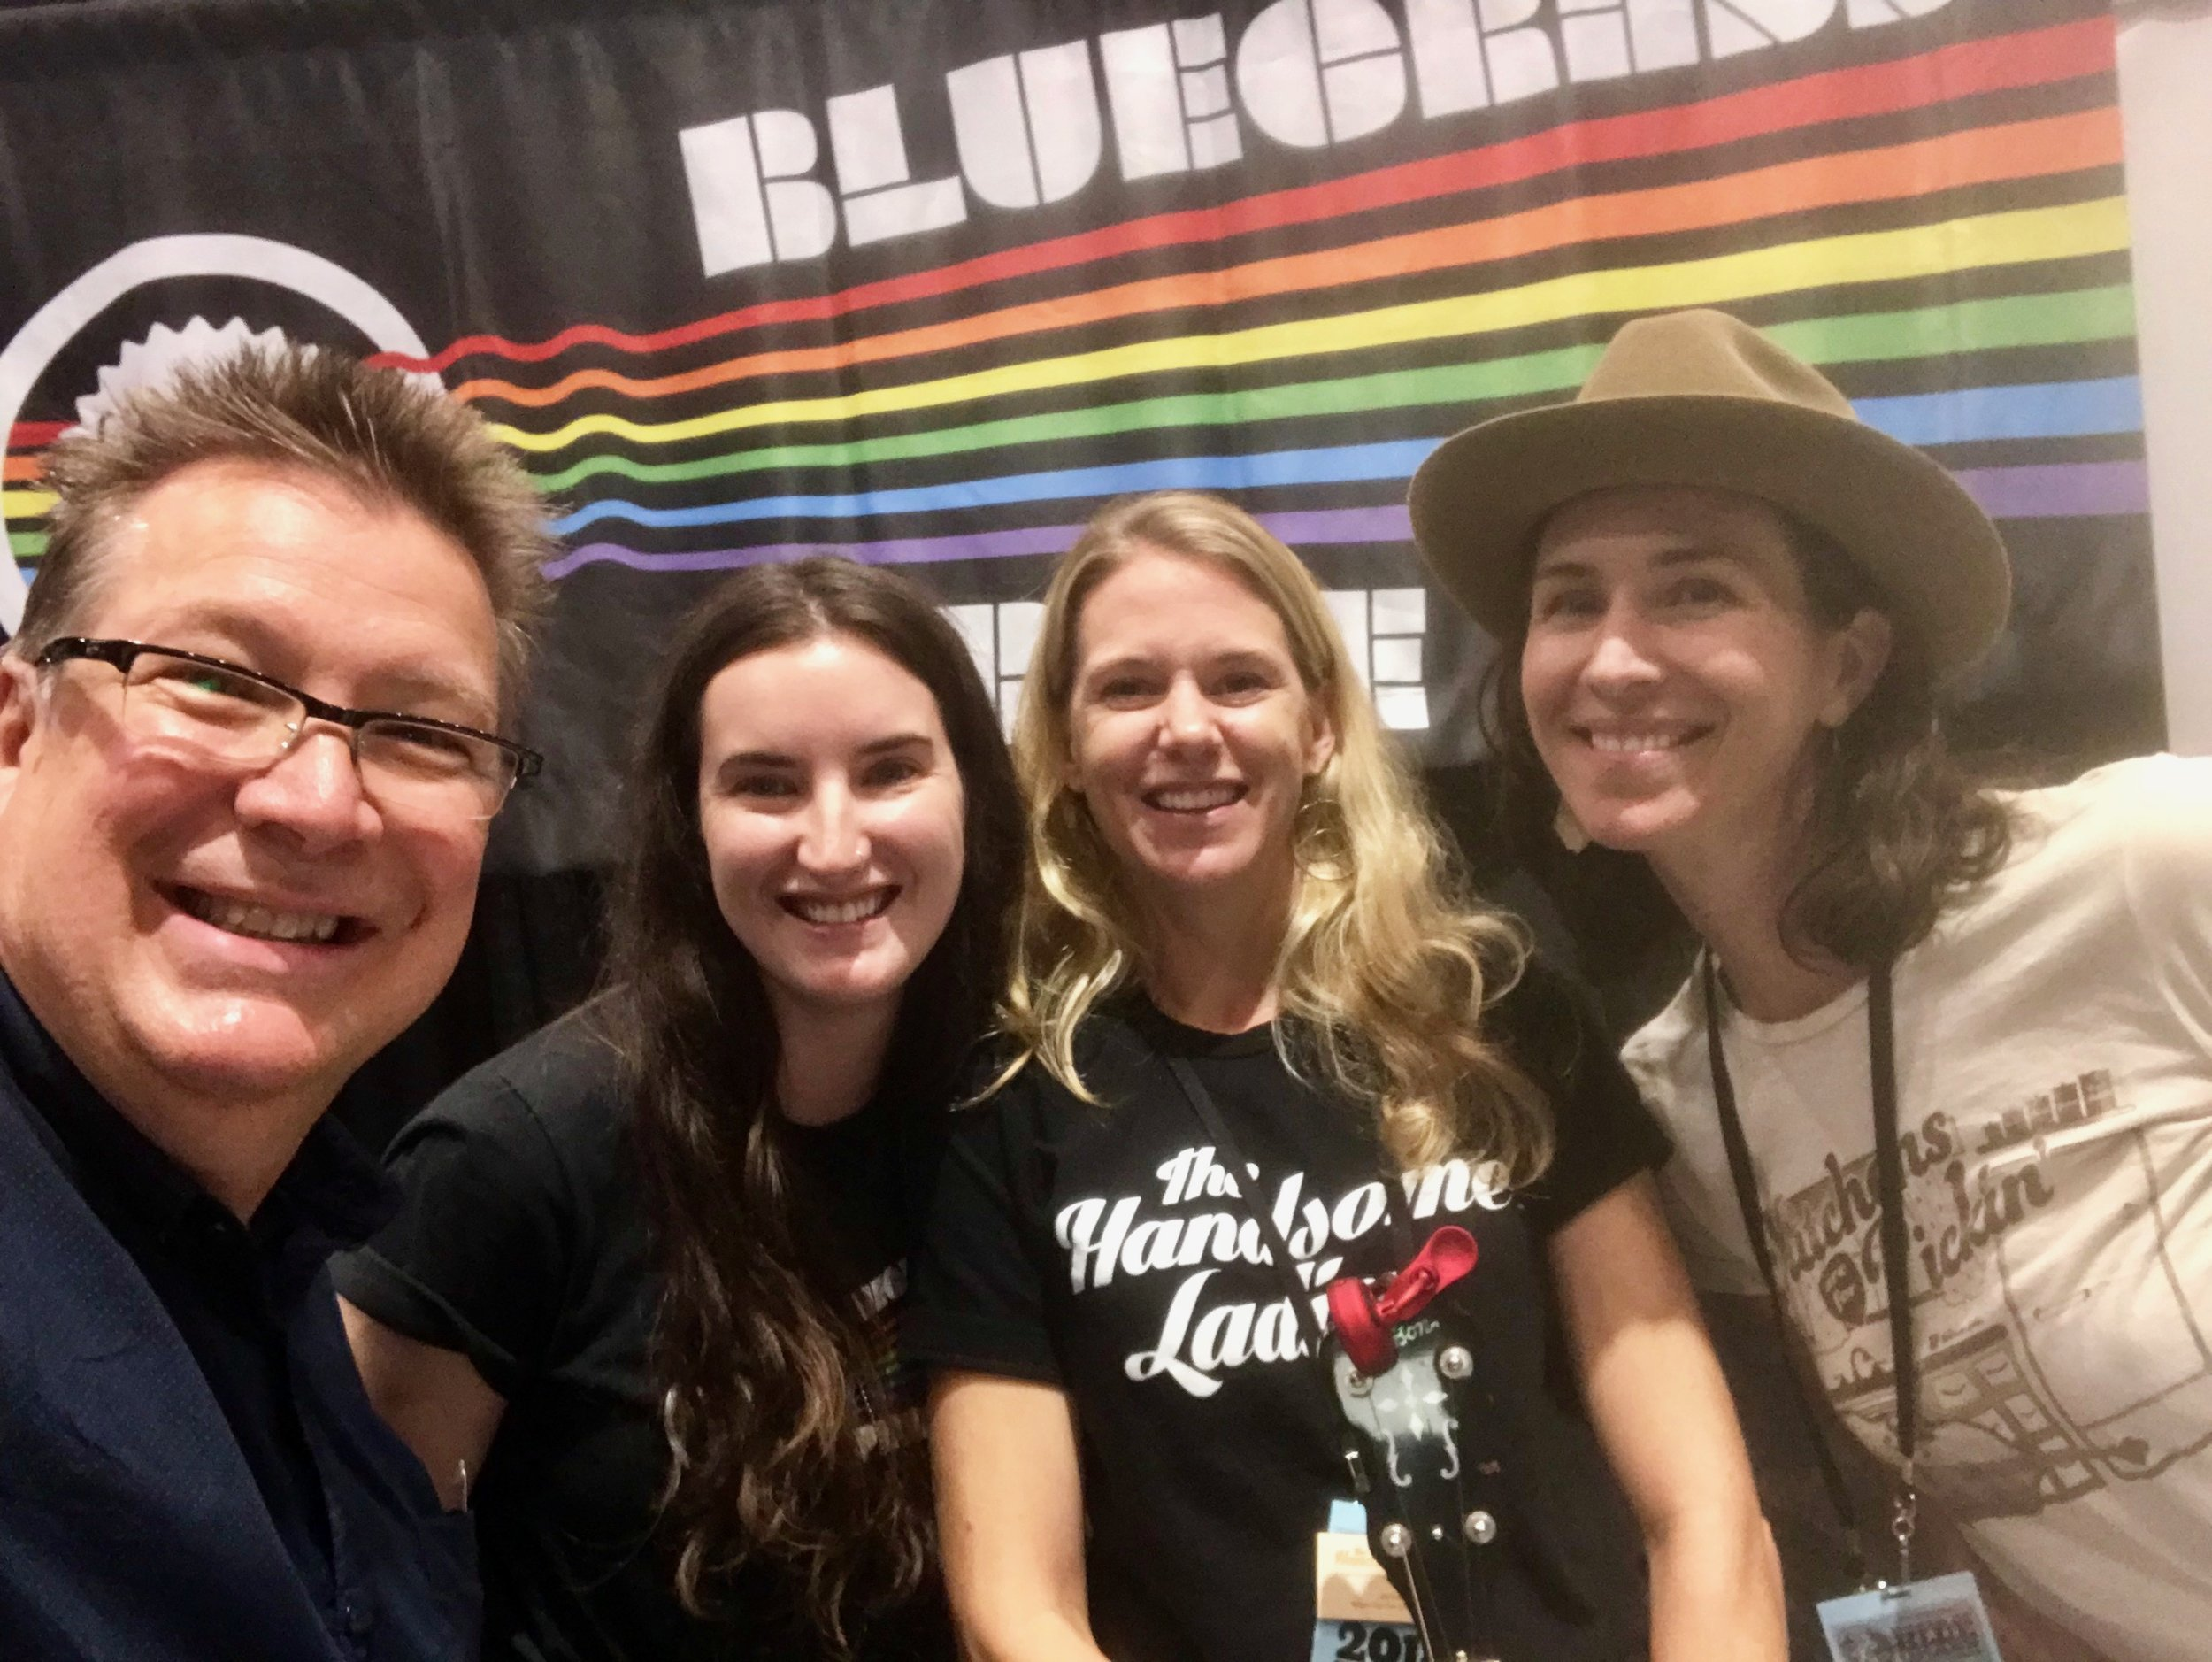 Banjo Player of the Year (and my banjo teacher) Ned Luberecki stops by our booth, Kara Kundert, me, Gina Astesana